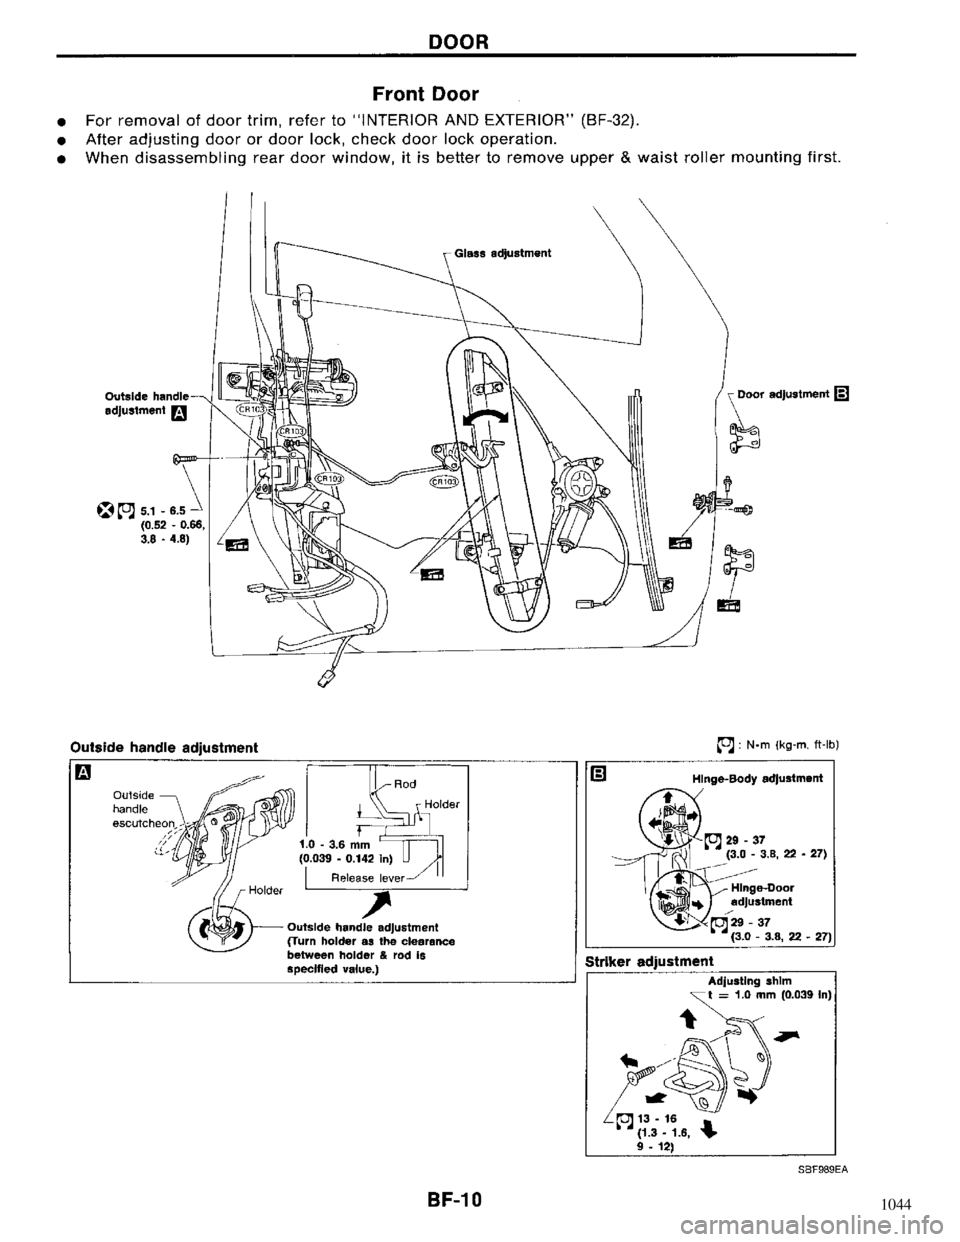 NISSAN MAXIMA 1994 A32 / 4.G Body Workshop Manual, Page 10